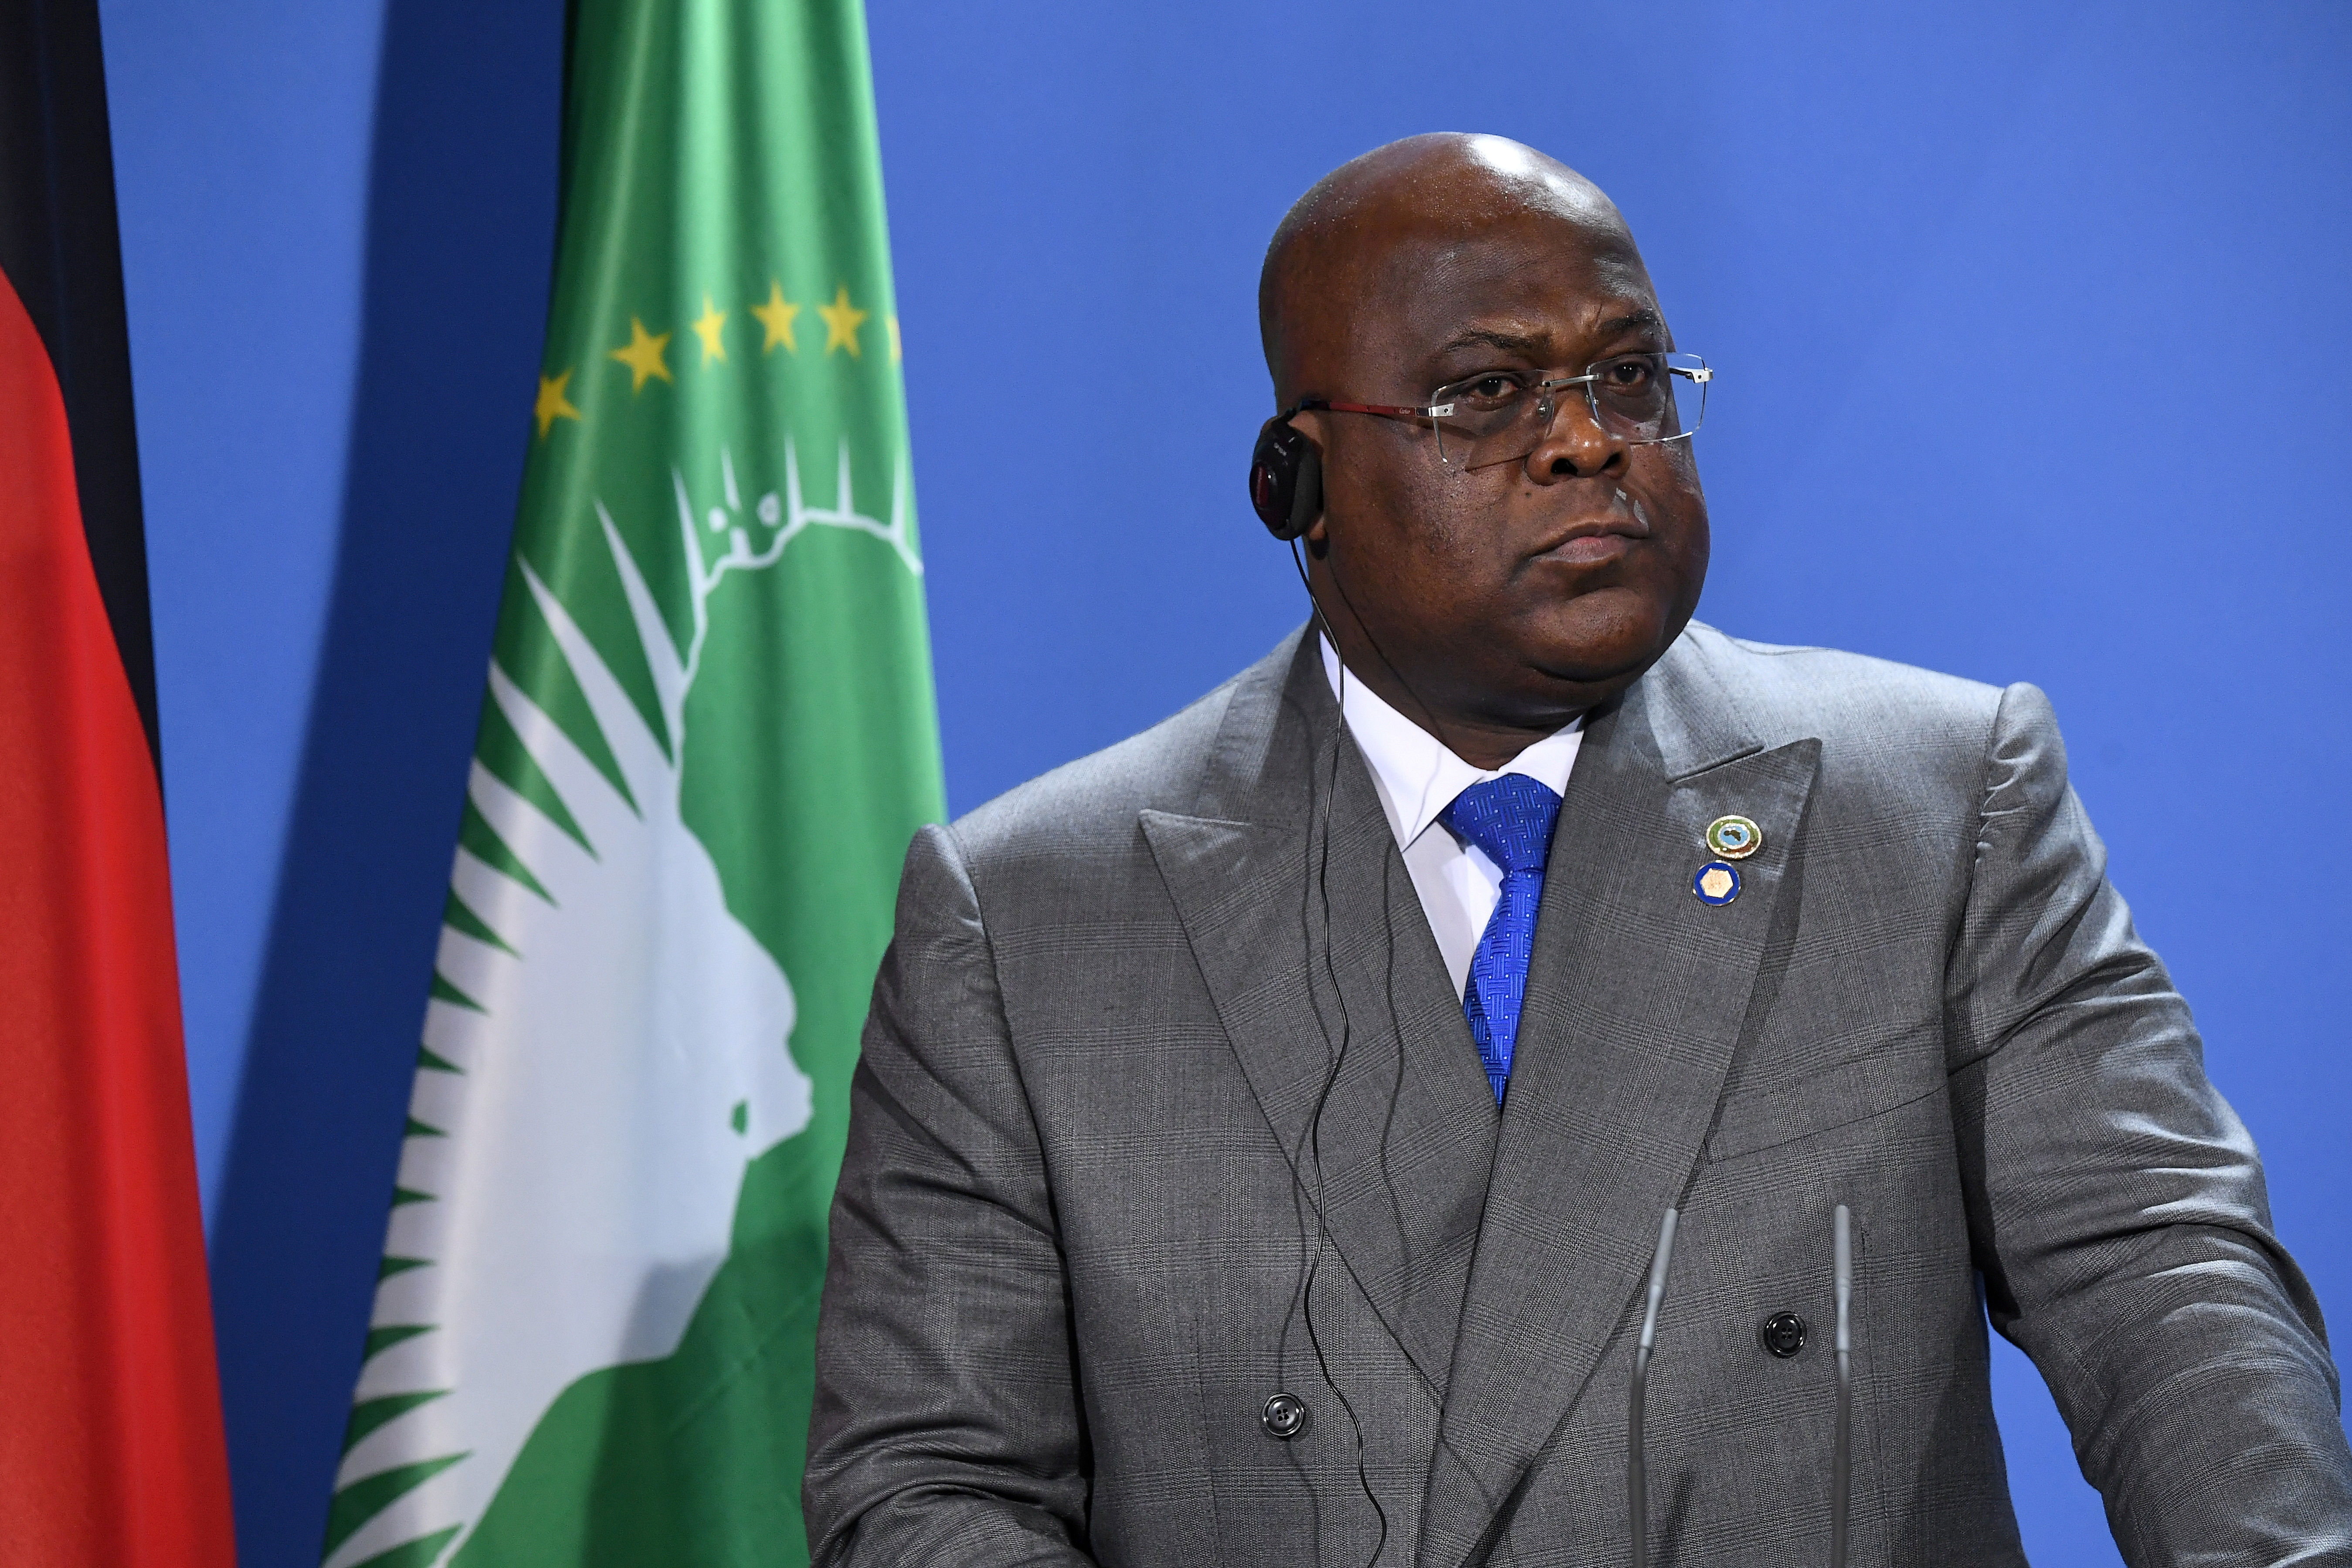 Felix Tshisekedi, President of the Democratic Republic of the Congo addresses a press conference after the G20 Compact with Africa conference at the Chancellery in Berlin, Germany August 27, 2021. Tobias Schwarz/Pool via REUTERS/File Photo